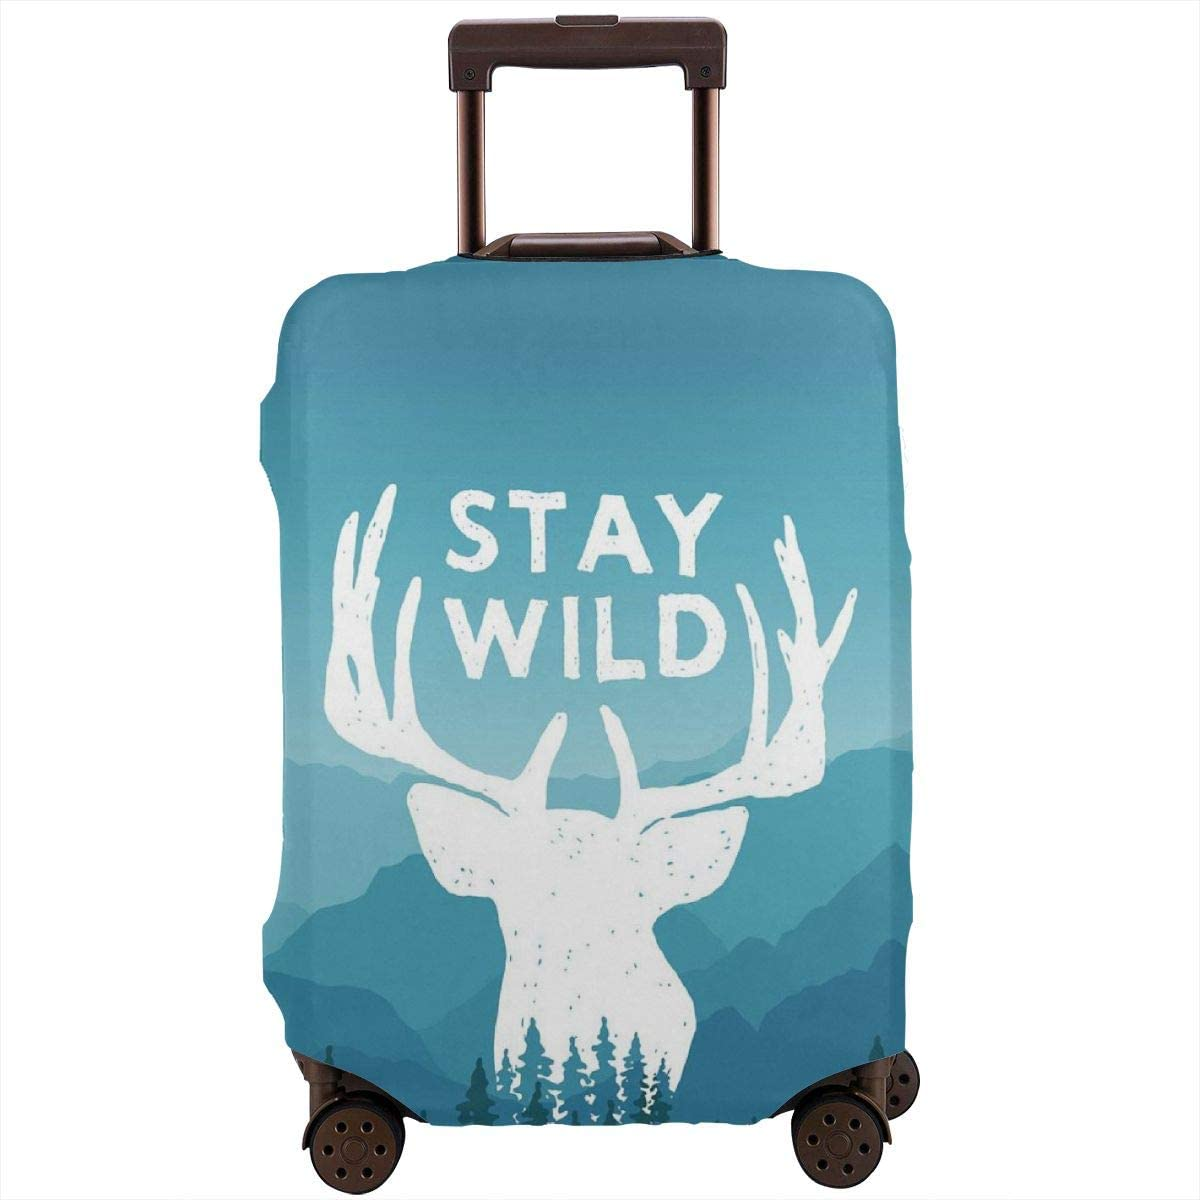 Luggage Cover Stay Wild Adventure Wilderness Emblems Protective Travel Trunk Case Elastic Luggage Suitcase Protector Cover